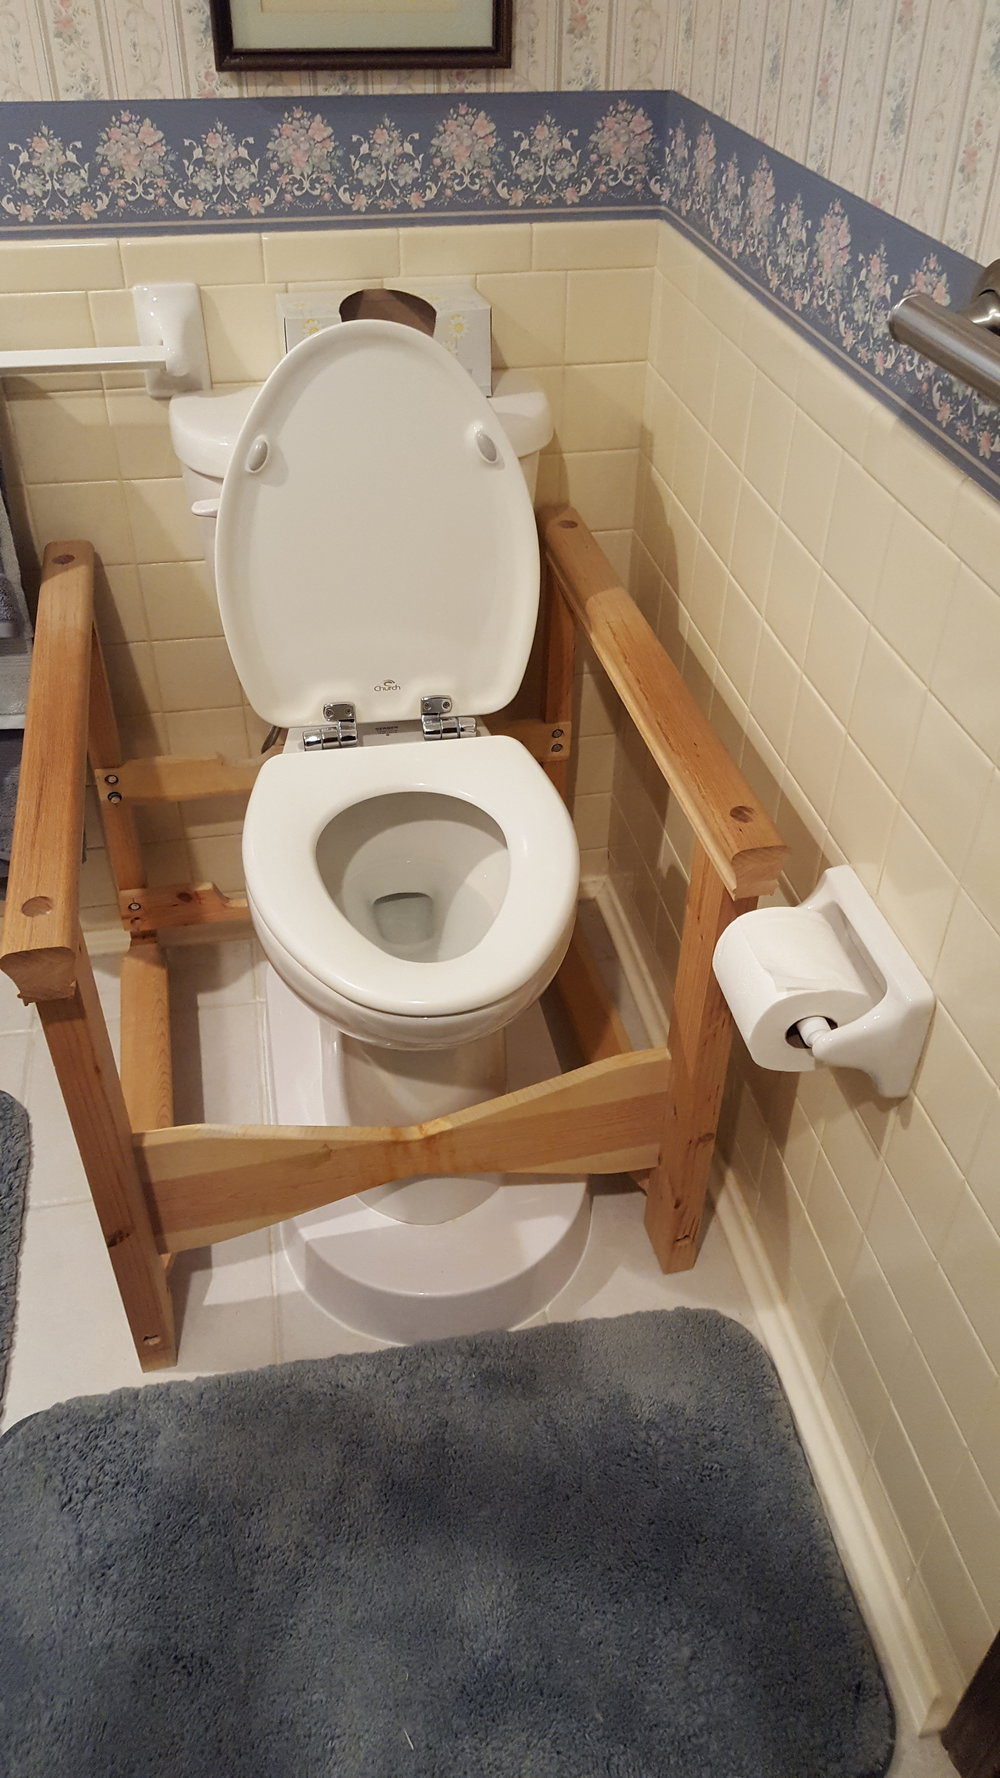 After - We installed a Toilevator to make the toilet seat 20 1/2 inches from the floor and kept the wooden armrests. My client was ecstatic!